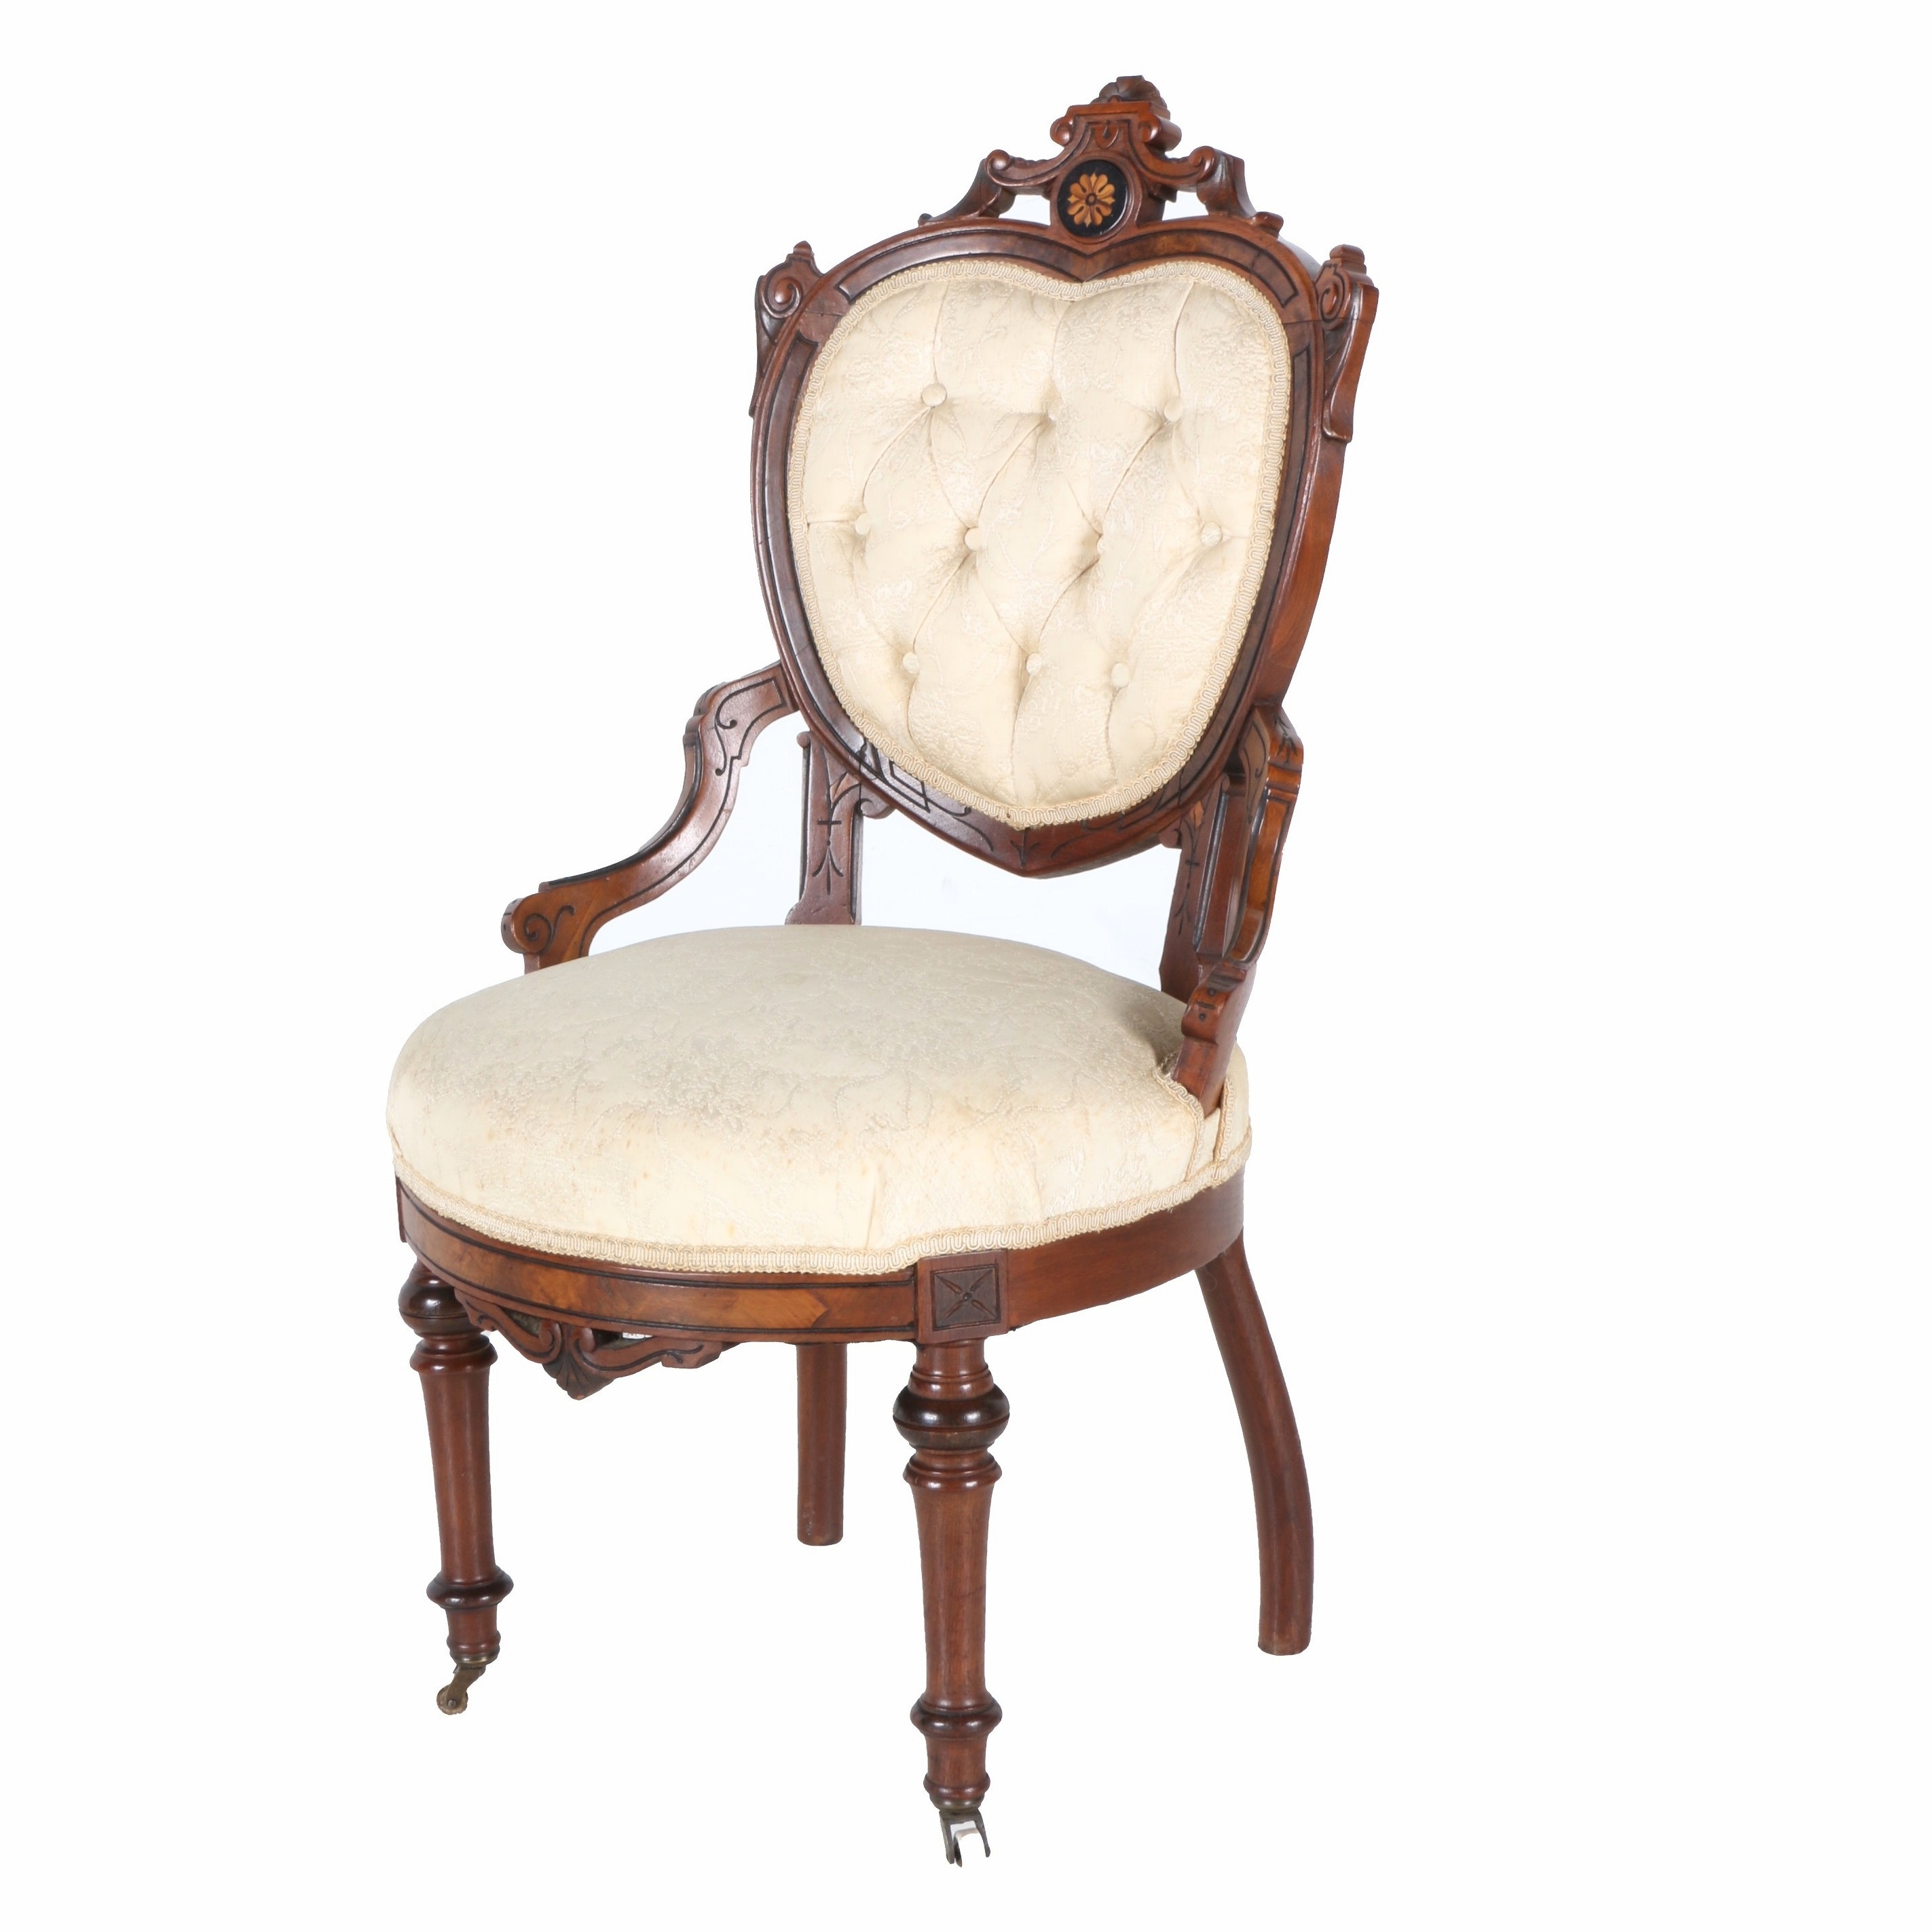 Victorian Parlor Chair With Heart Shaped Back In Beige Upholstery ...